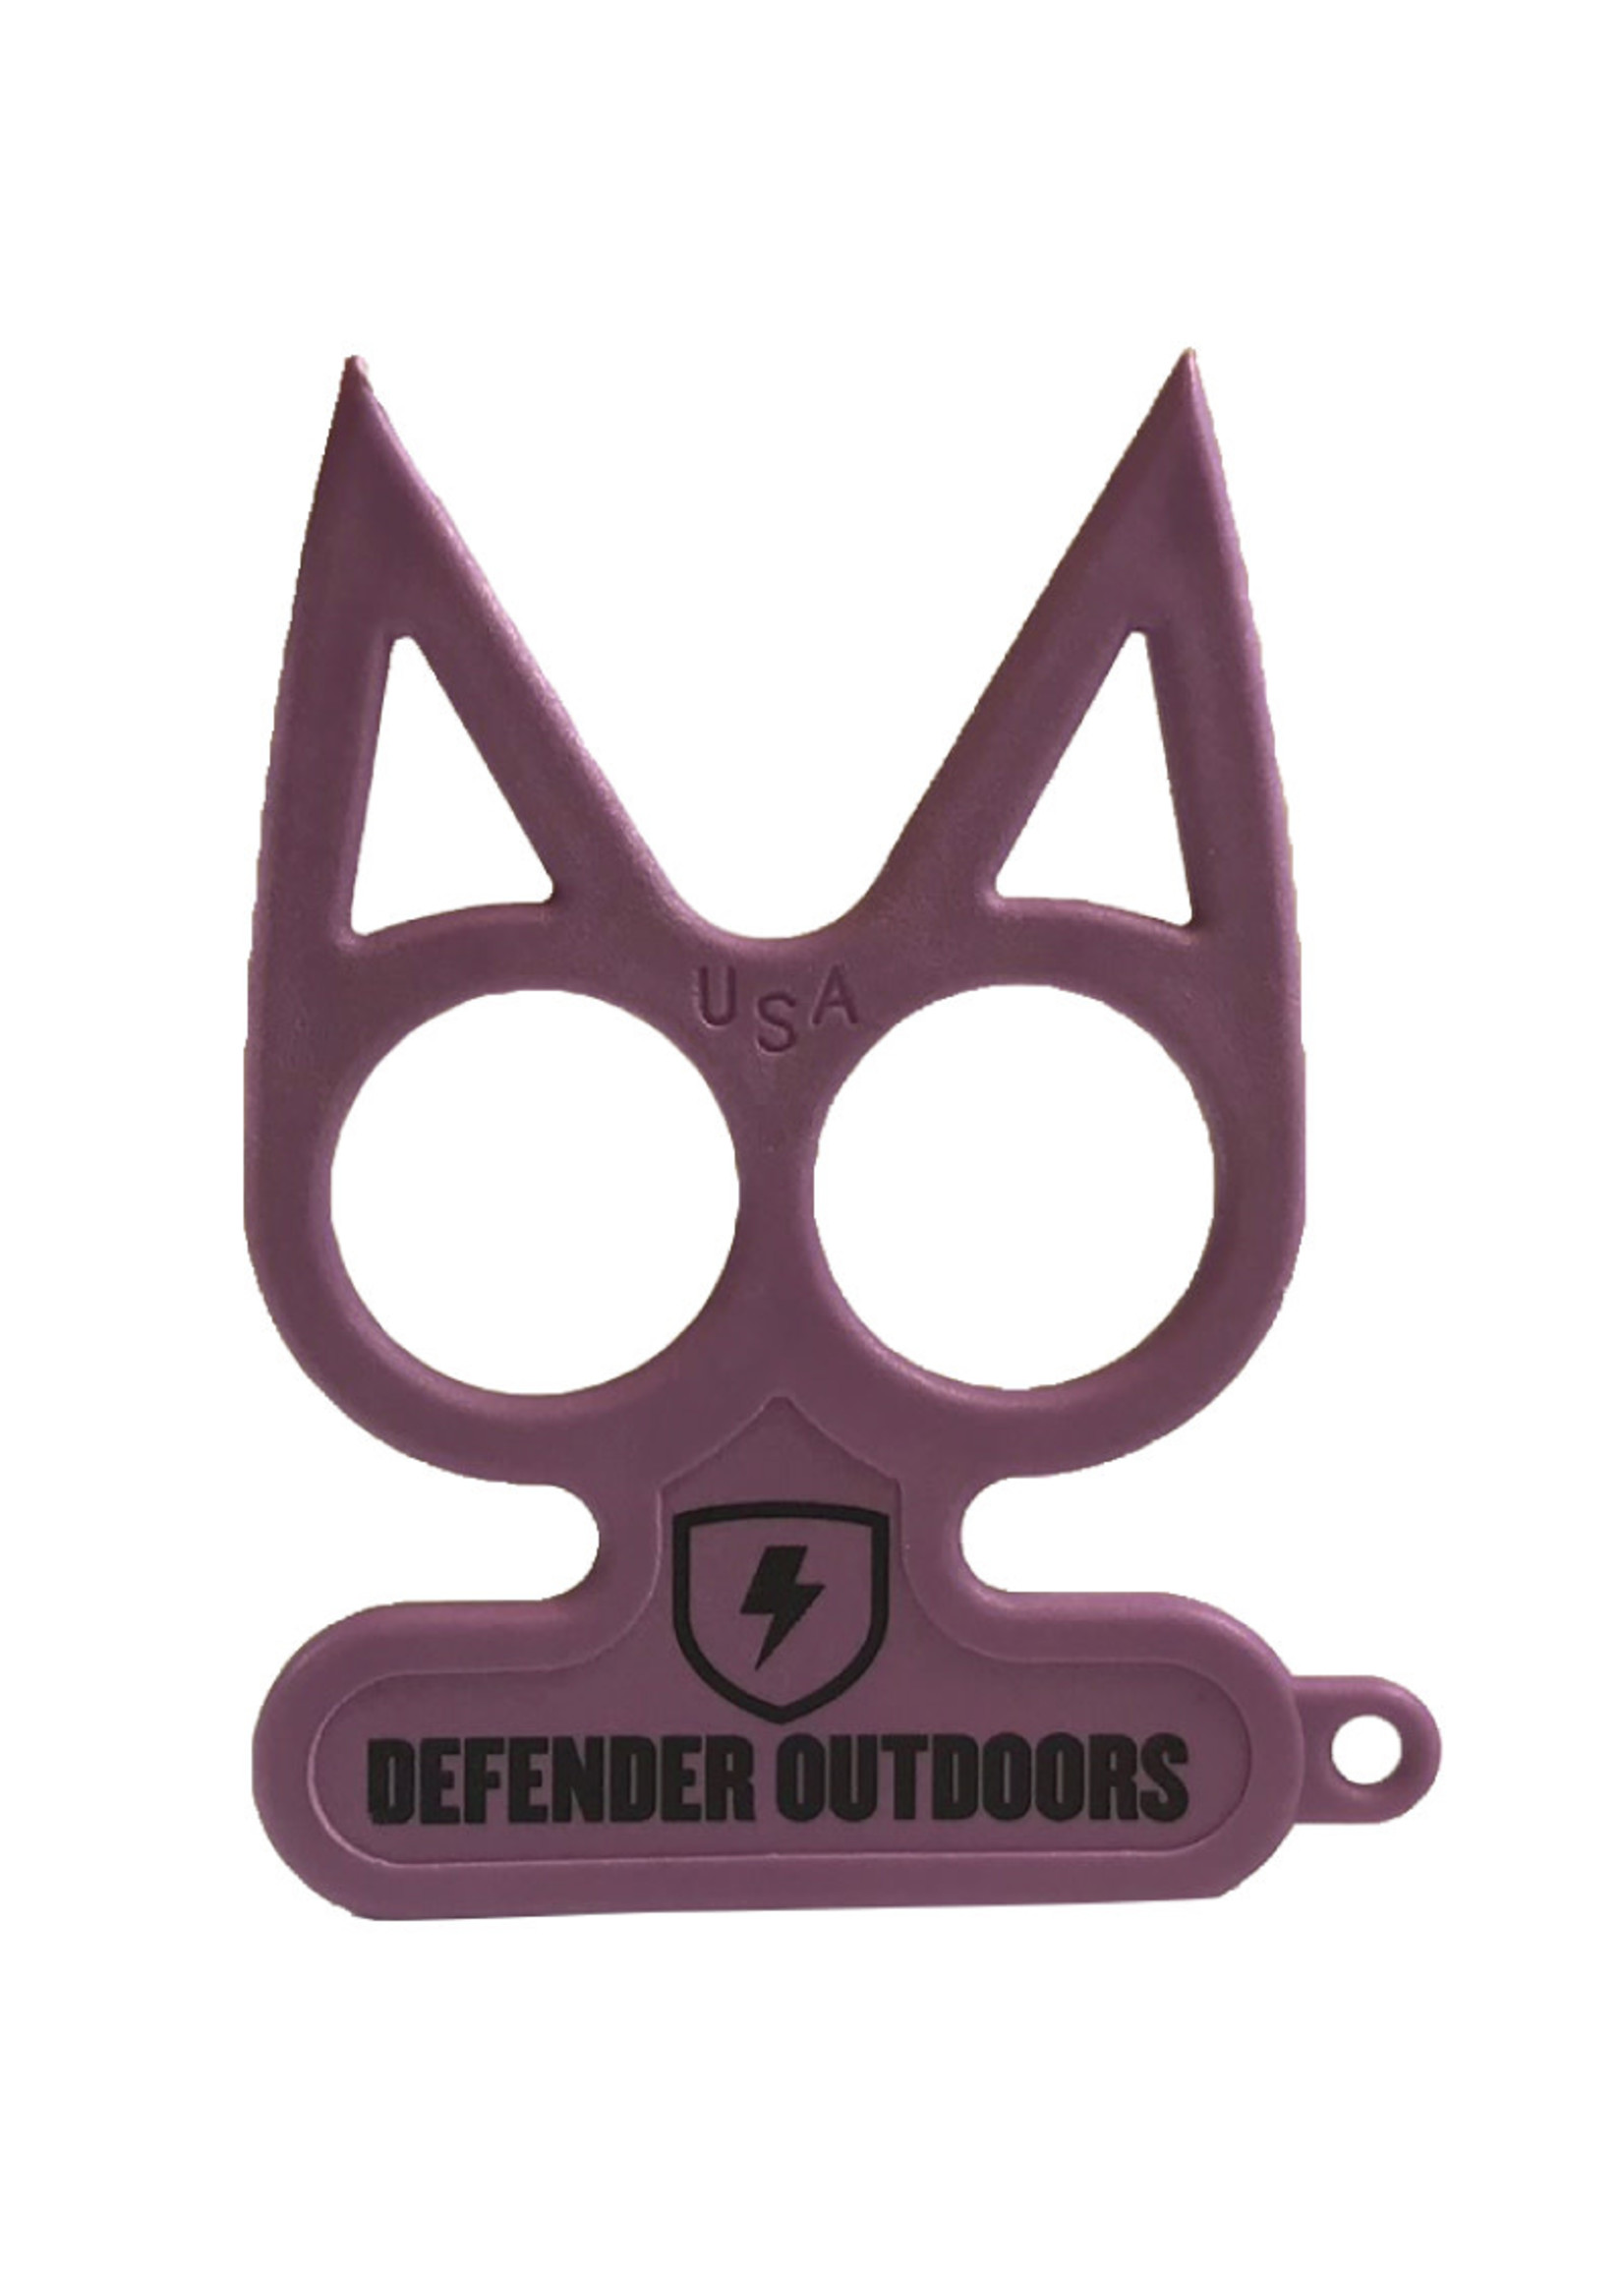 Defender Outdoors Self Defense Keychain